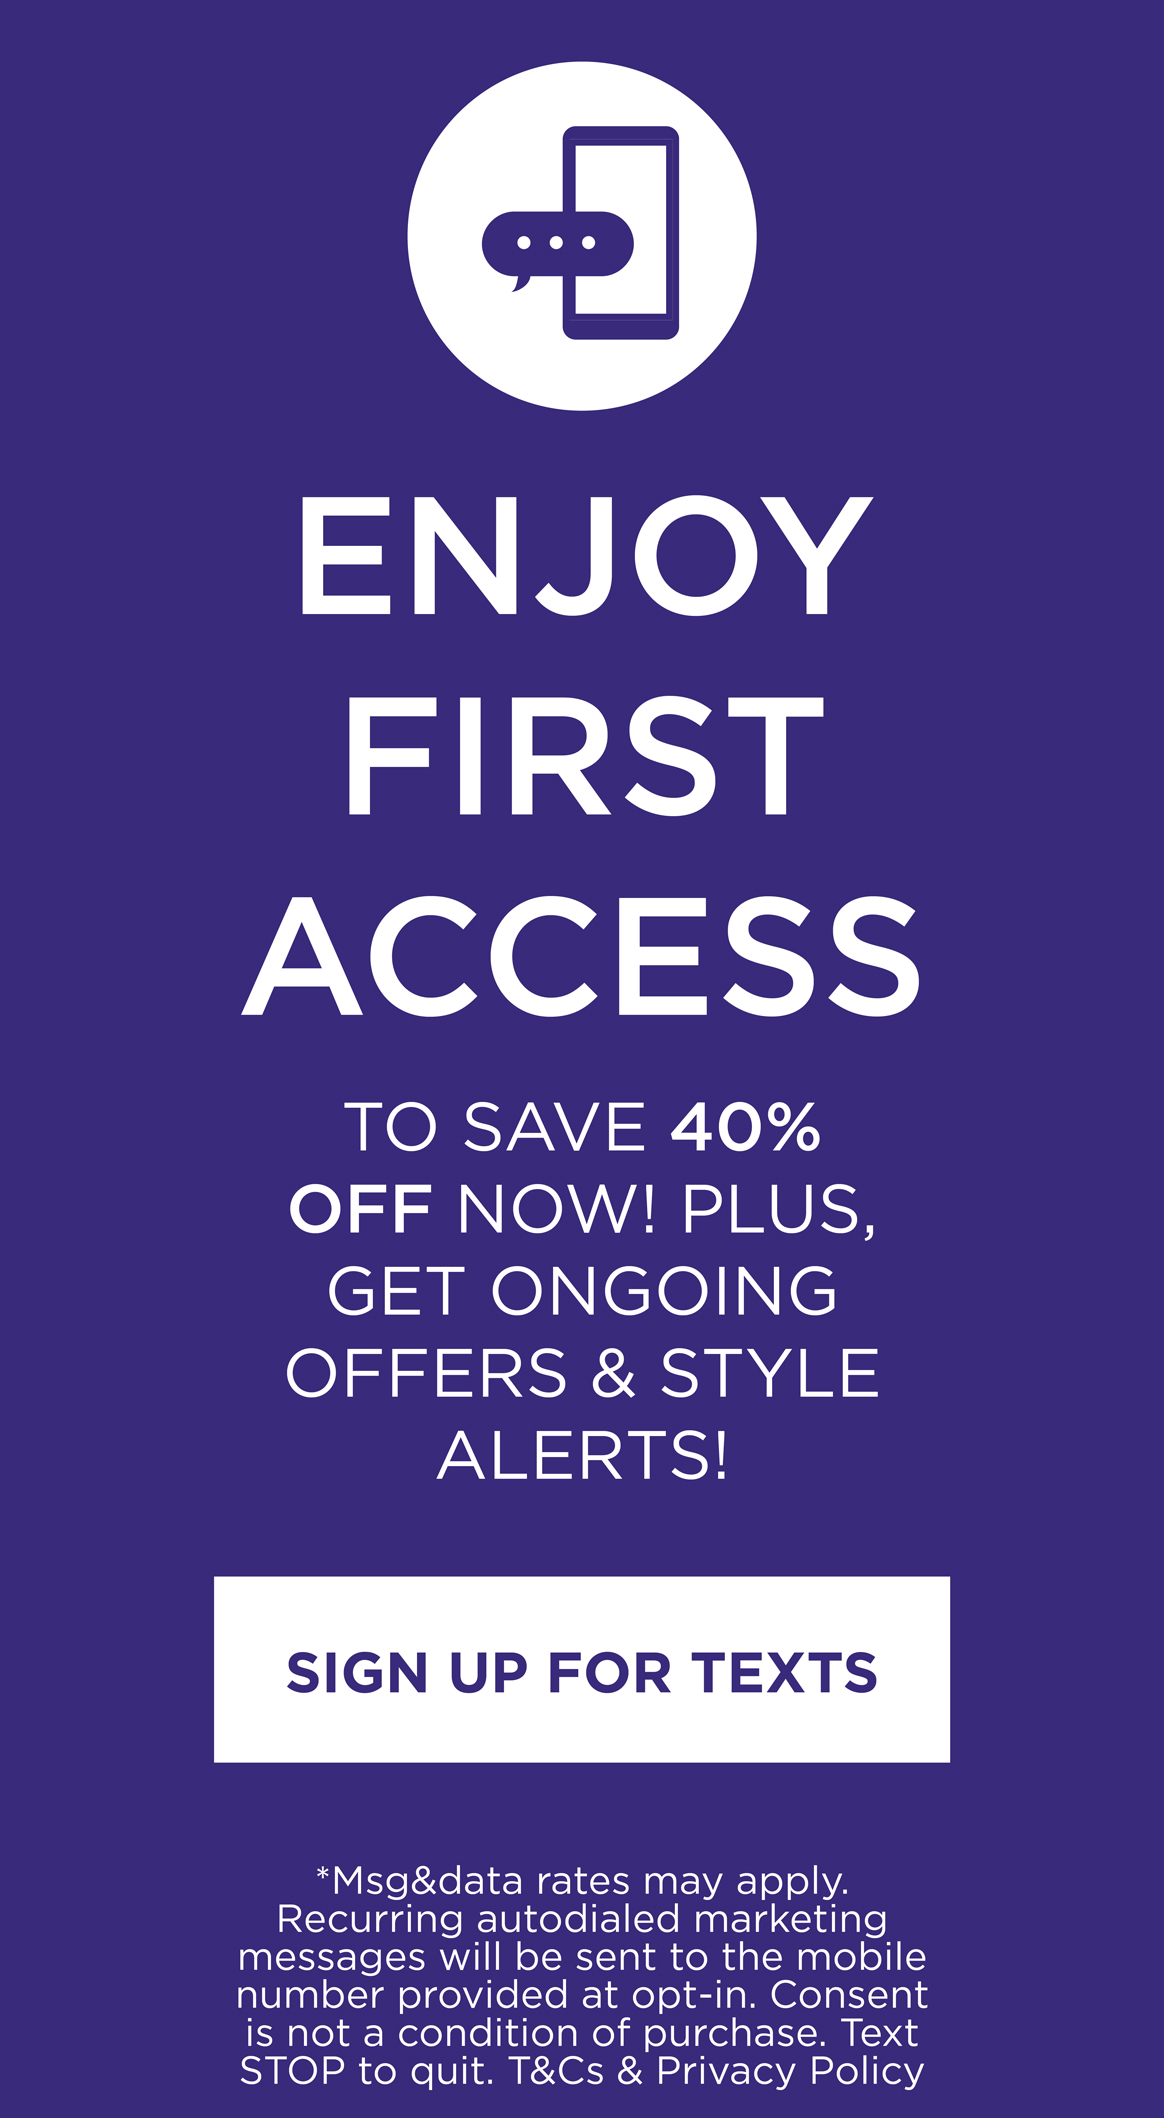 Enjoy First Access to special offers, new arrivals and more! Sign up for texts.